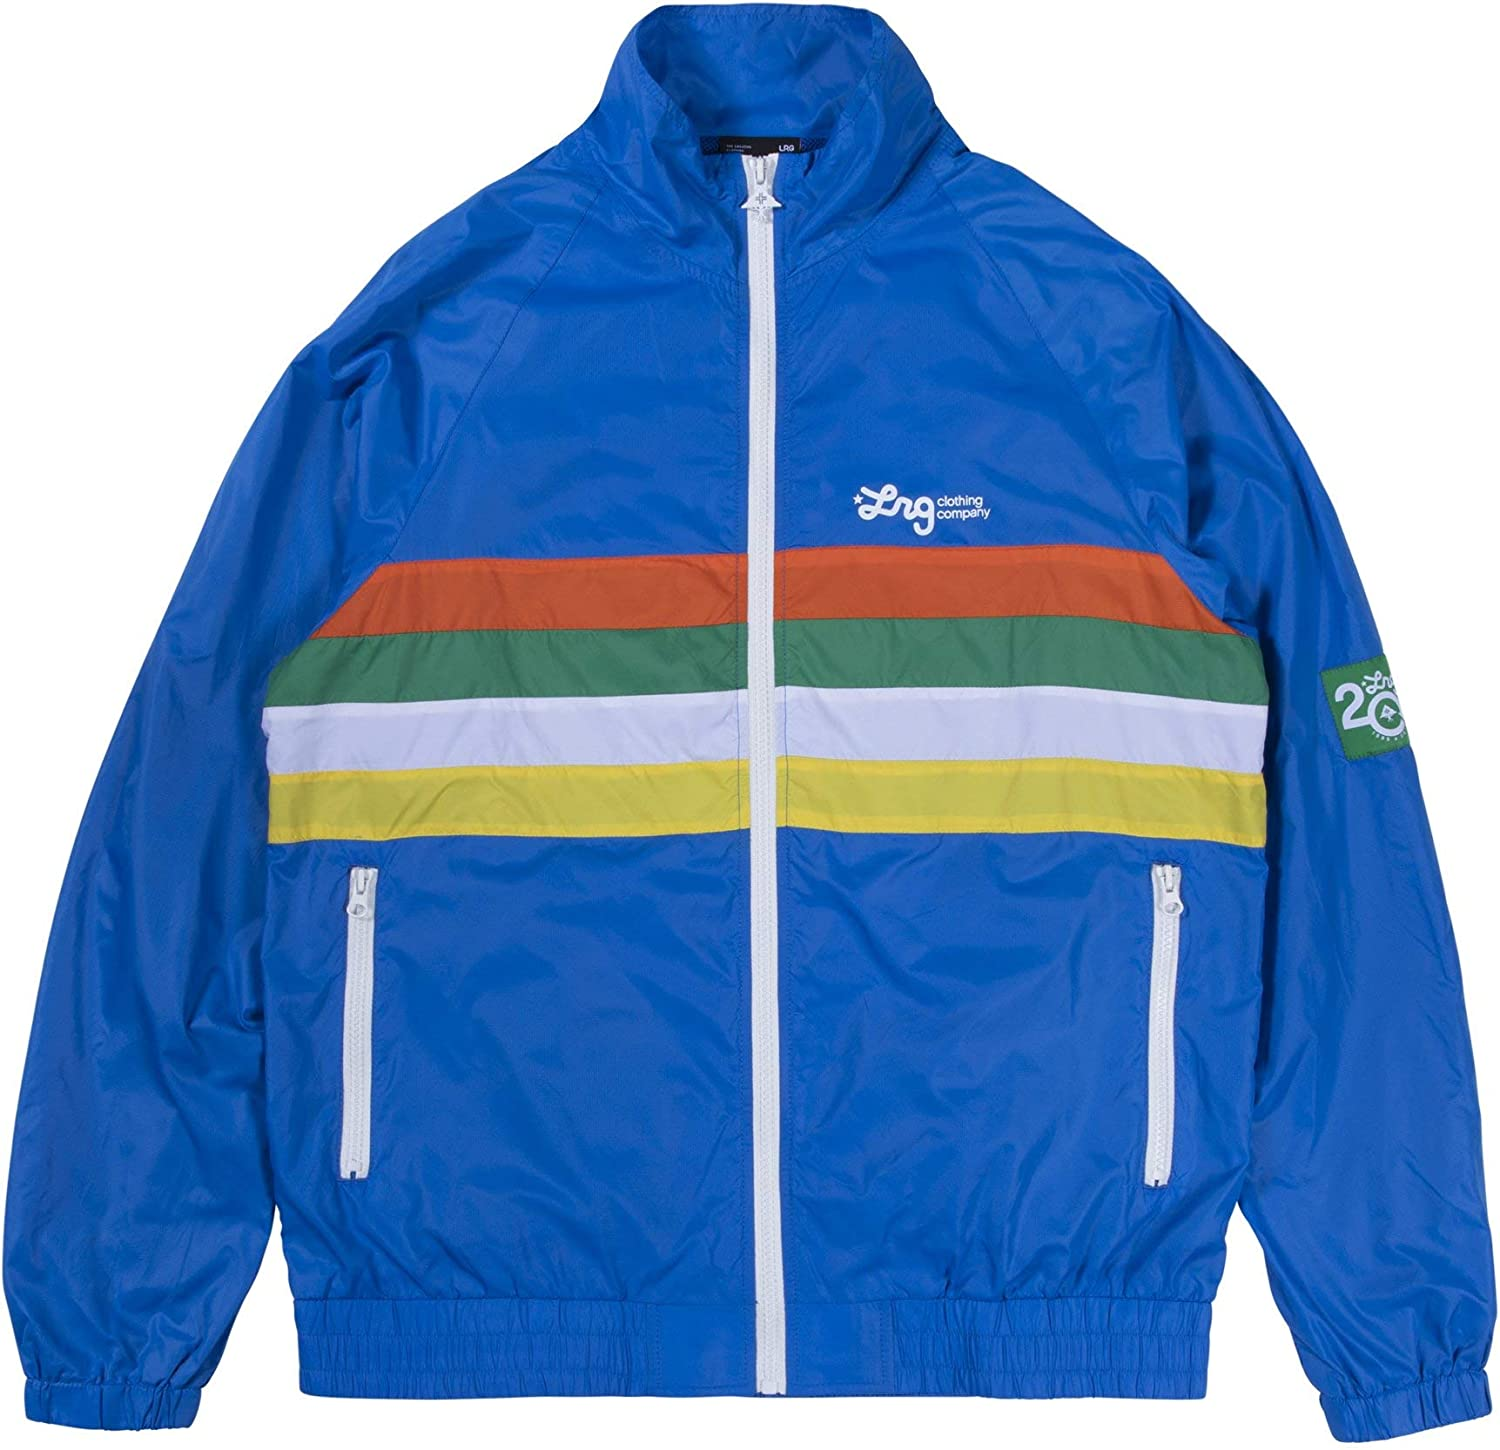 LRG Mens Lifted Research Group Zip Track Jacket